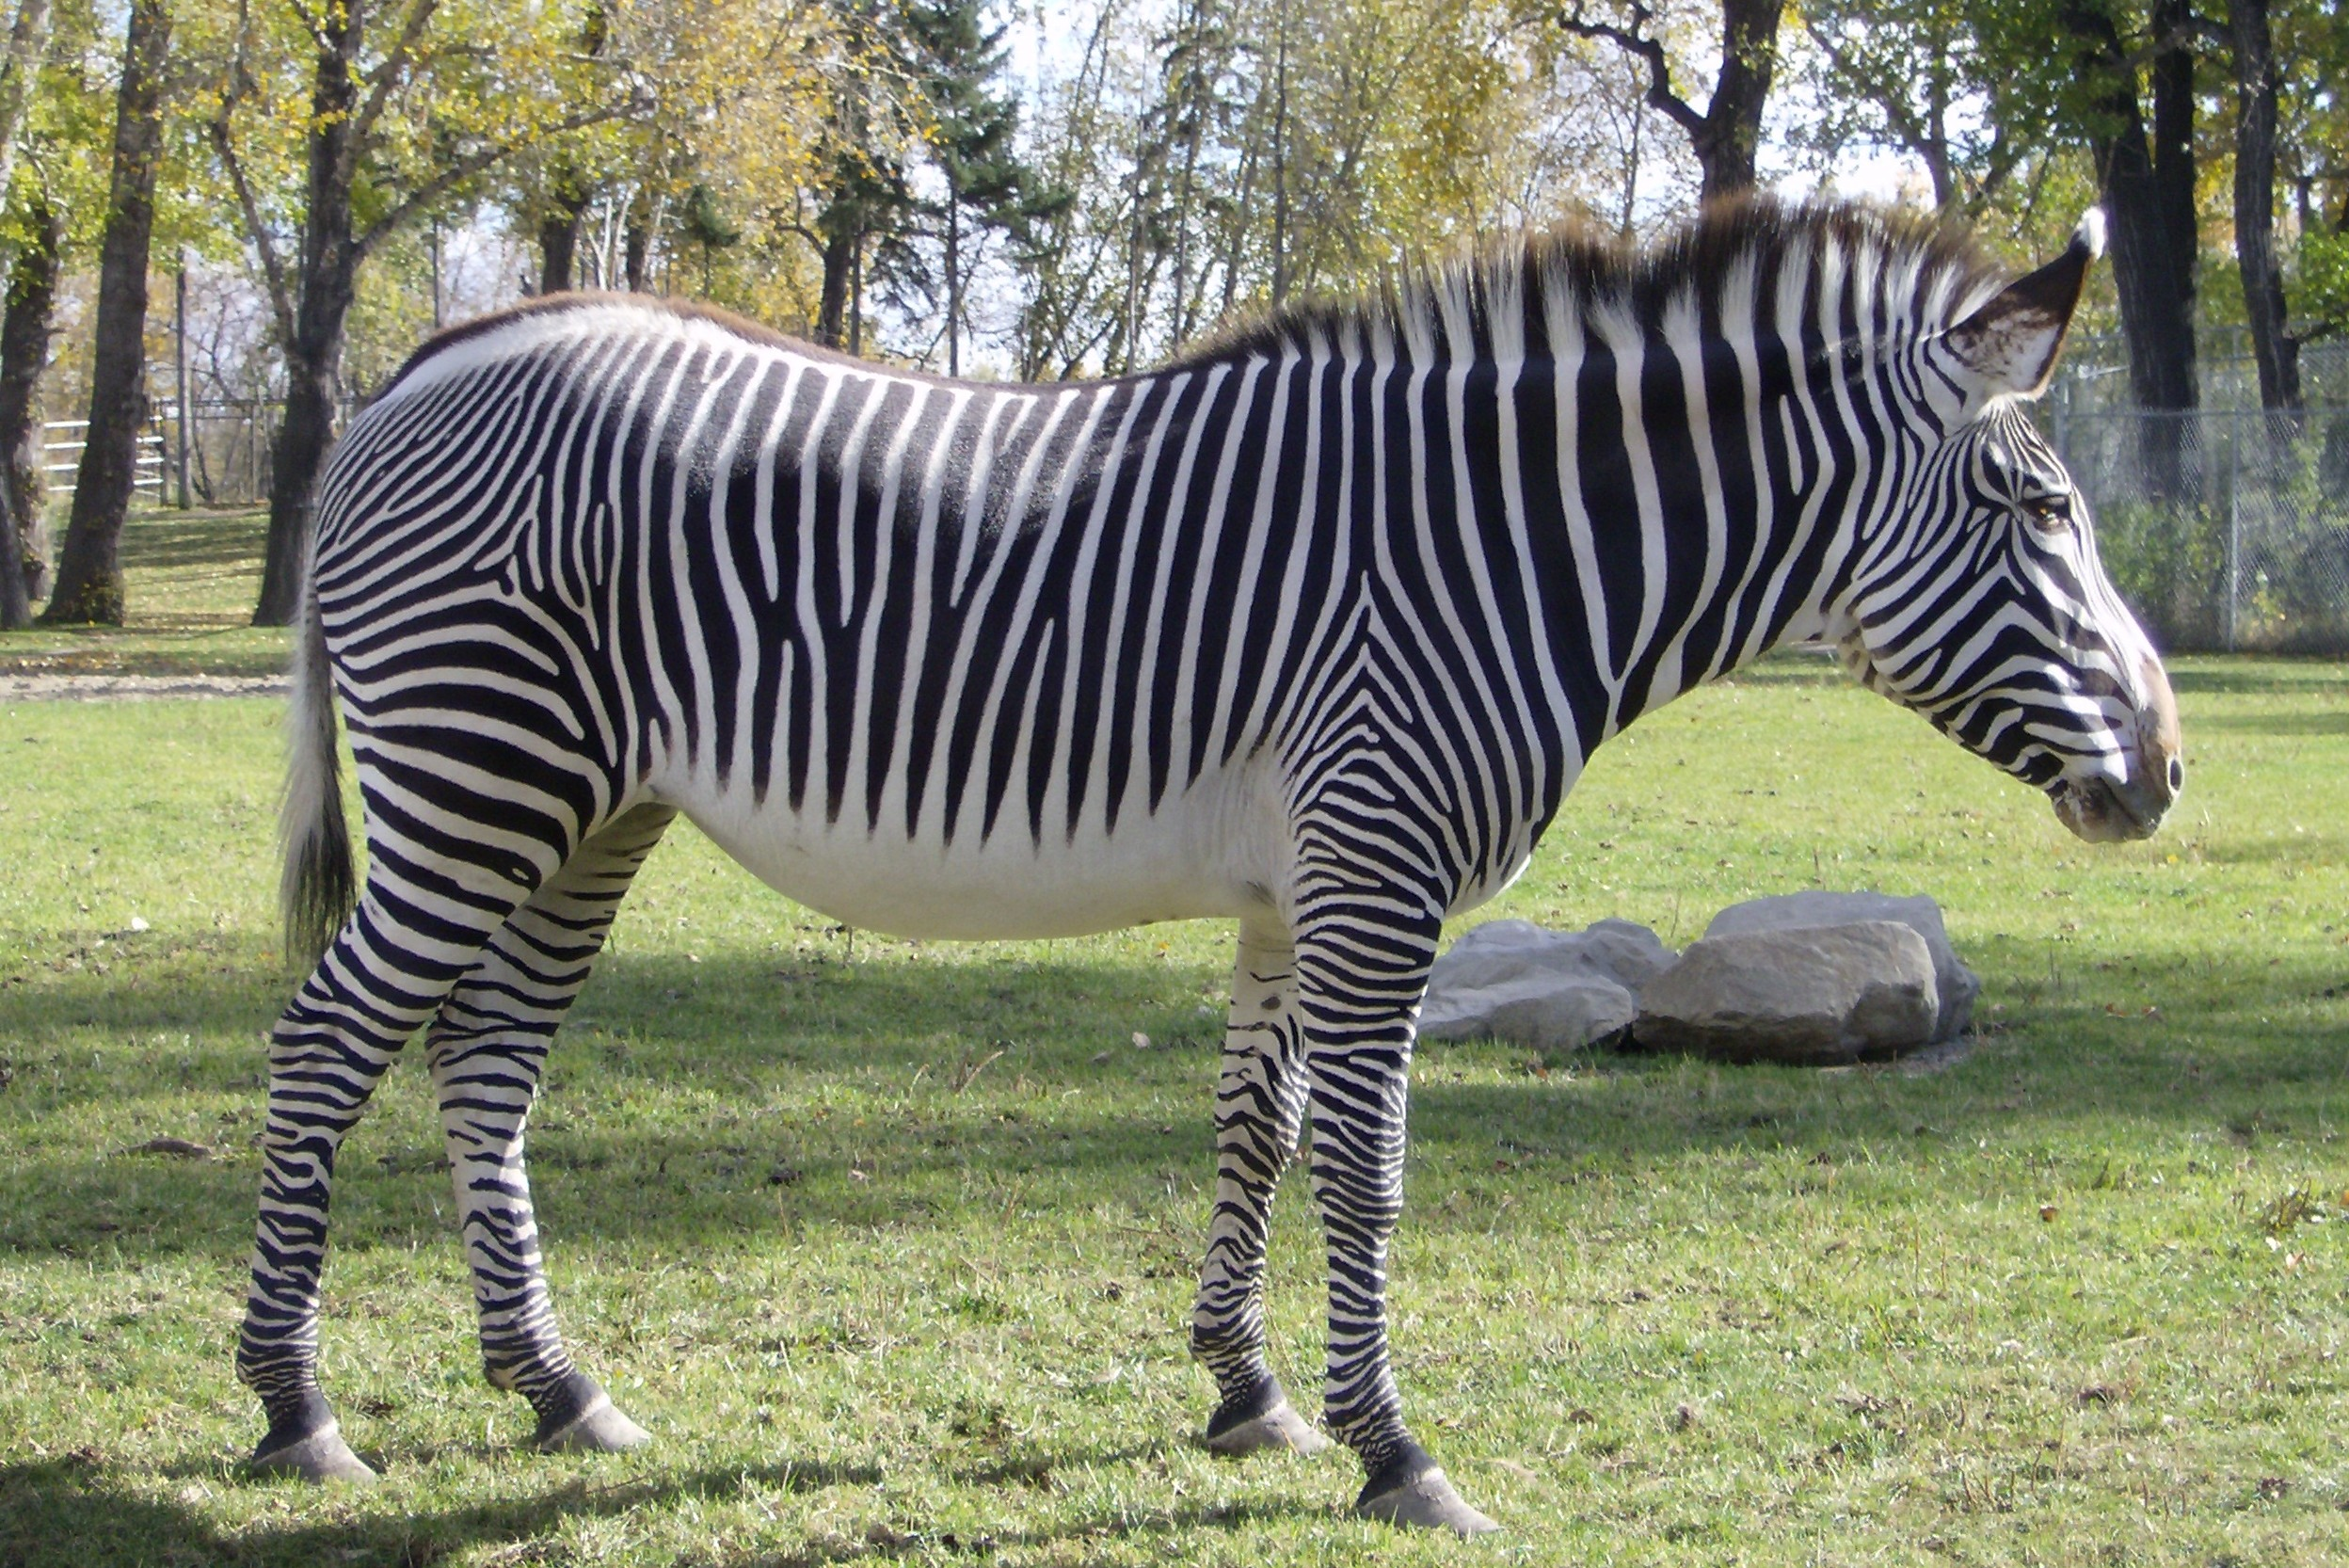 Zebra on Pinterest | Zebras, Skeletons and Africa